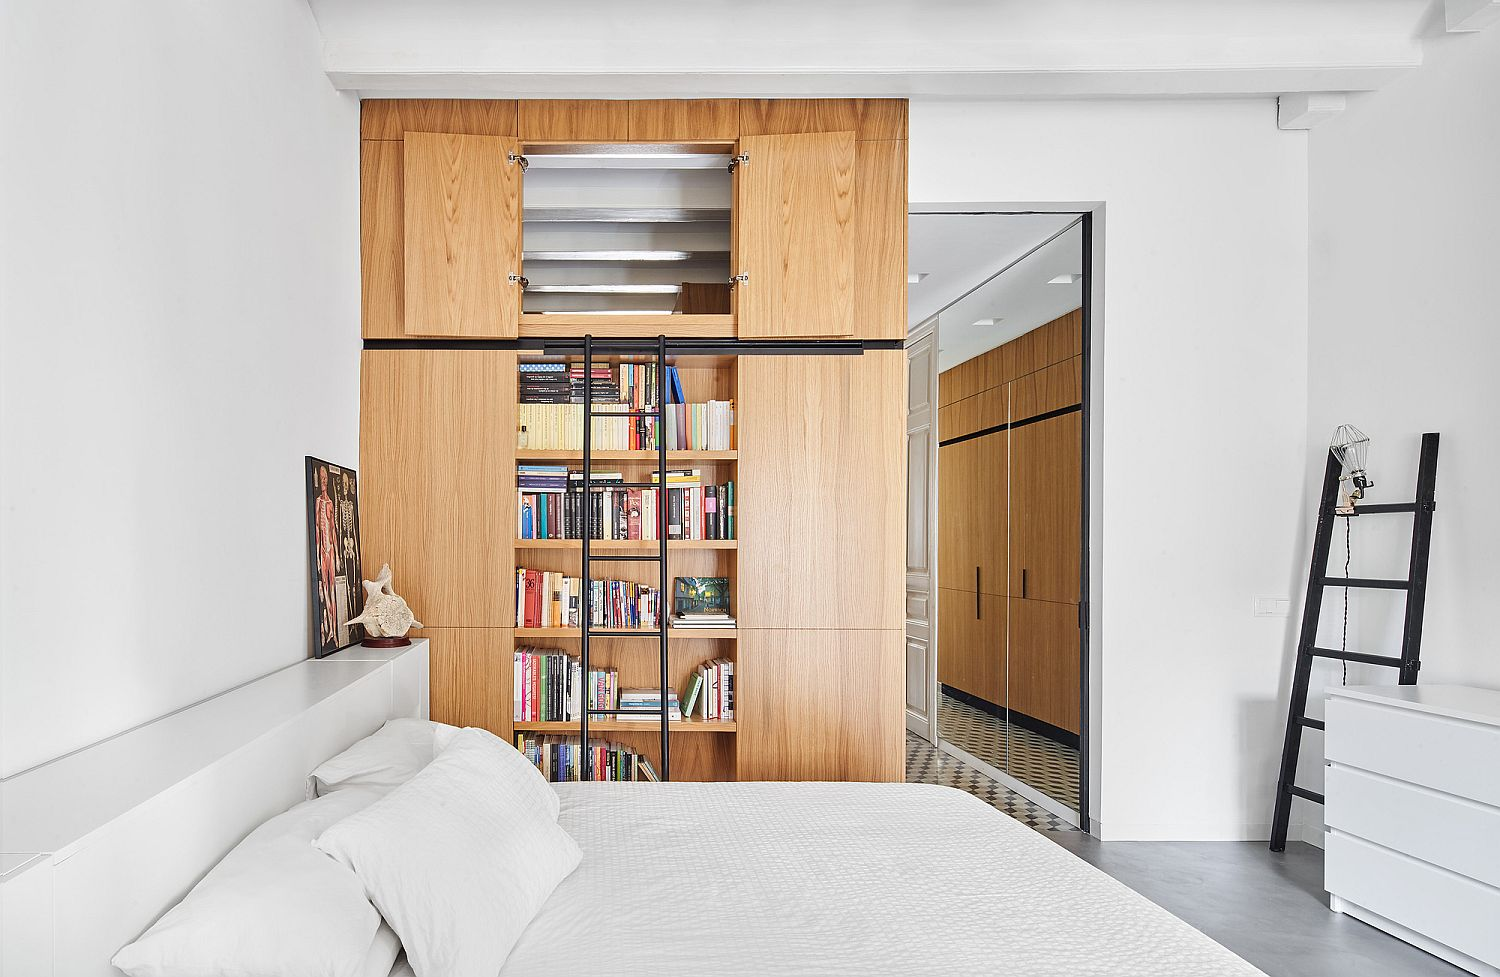 Shelves-and-cabinets-that-can-be-opened-and-closed-with-ease-inside-the-bedroom